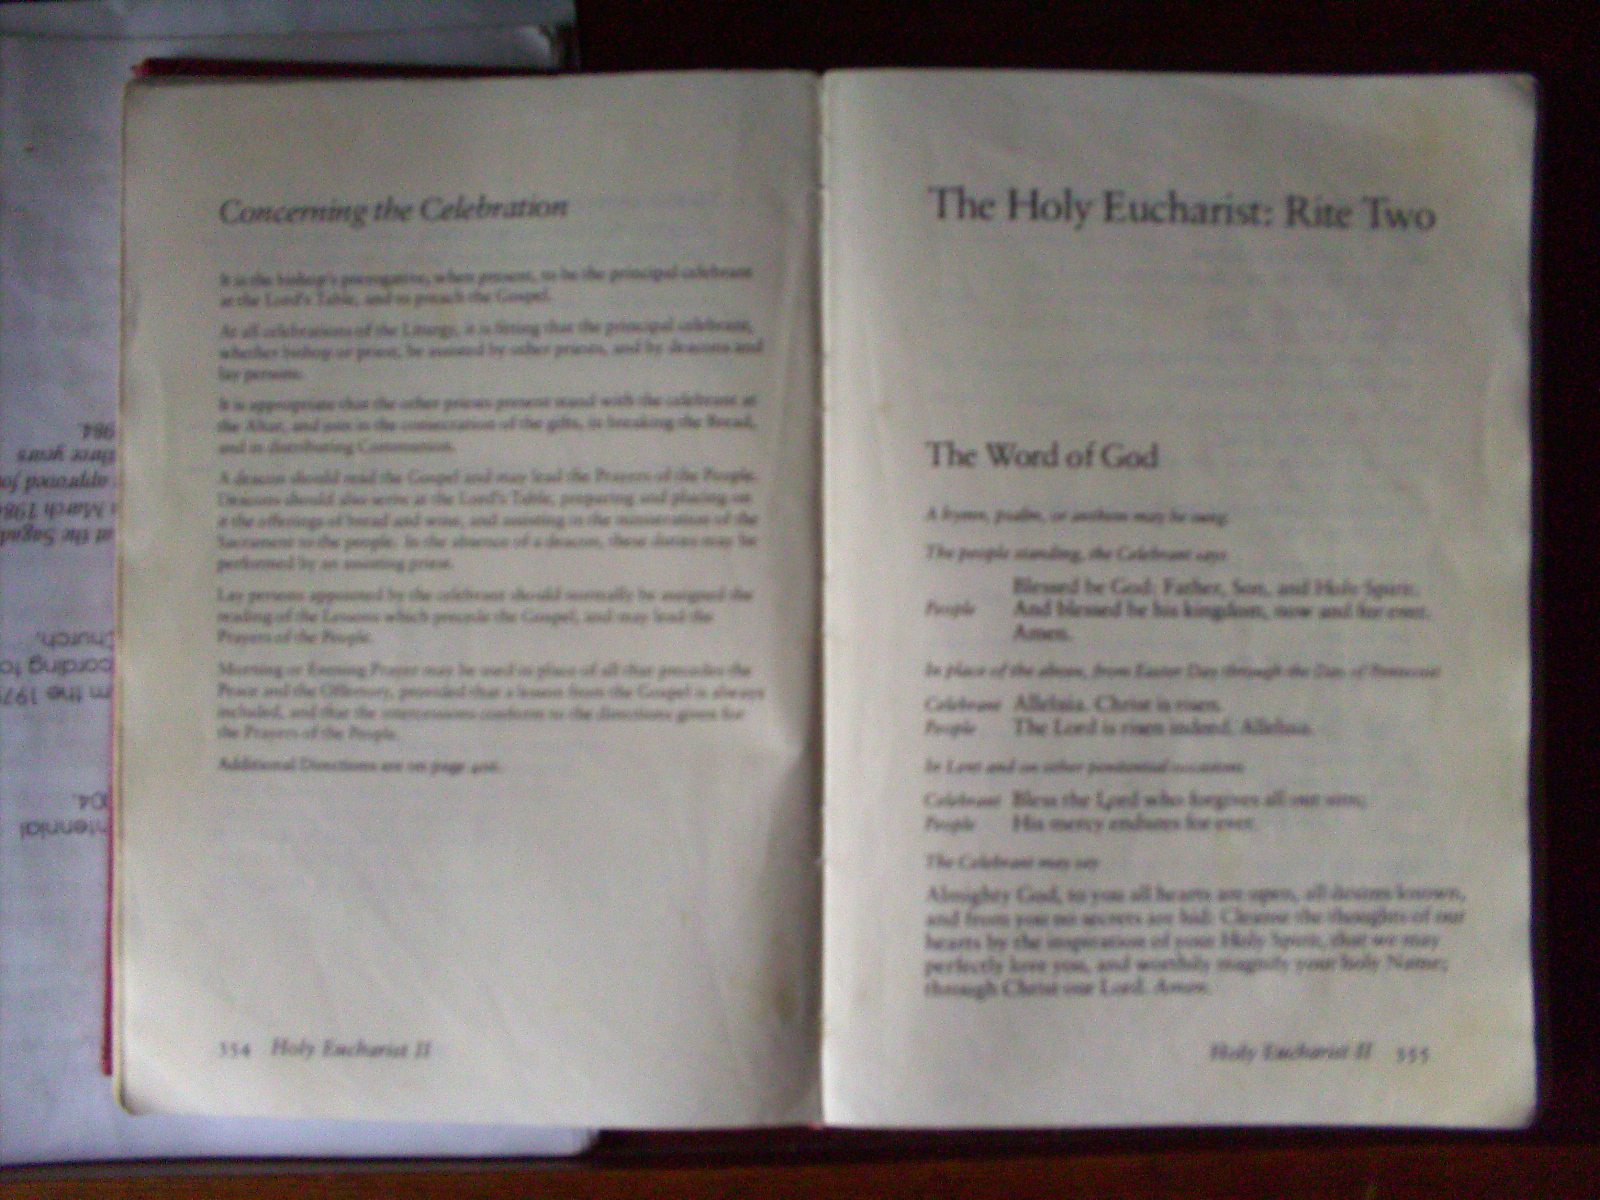 Book of common prayer wikipedia philippinesedit fandeluxe Choice Image